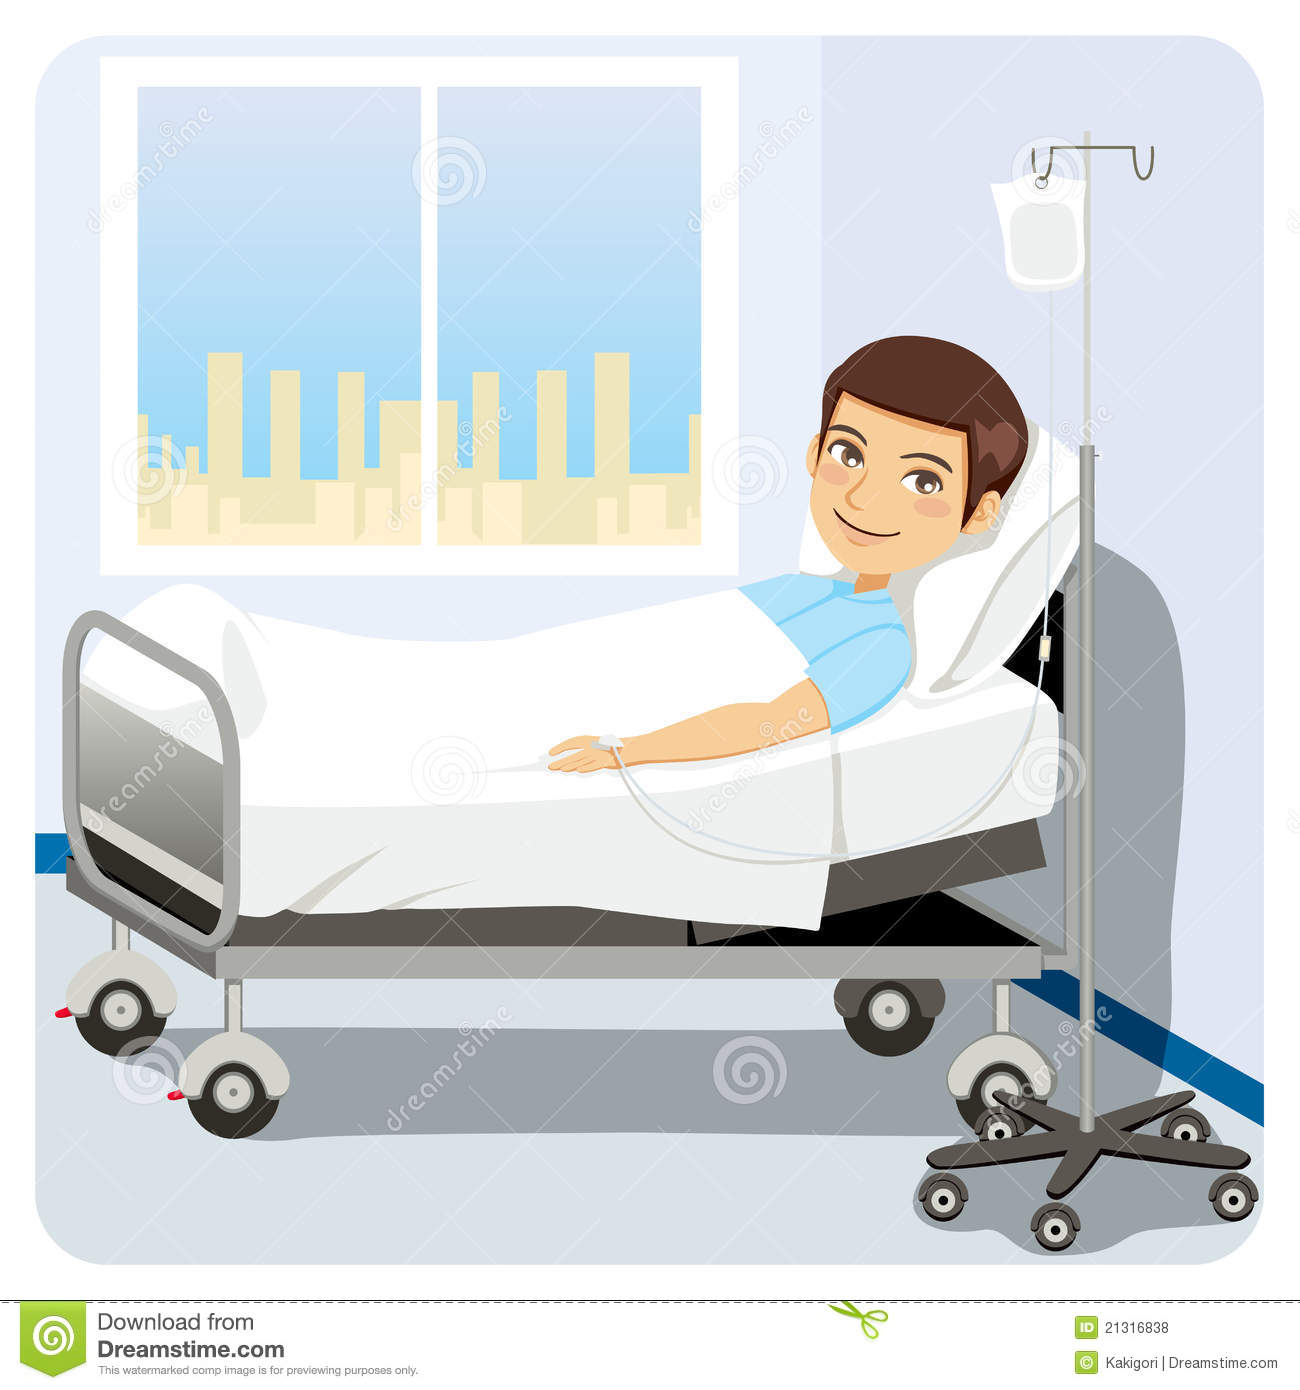 Image Result For Hospital Bed Clipart